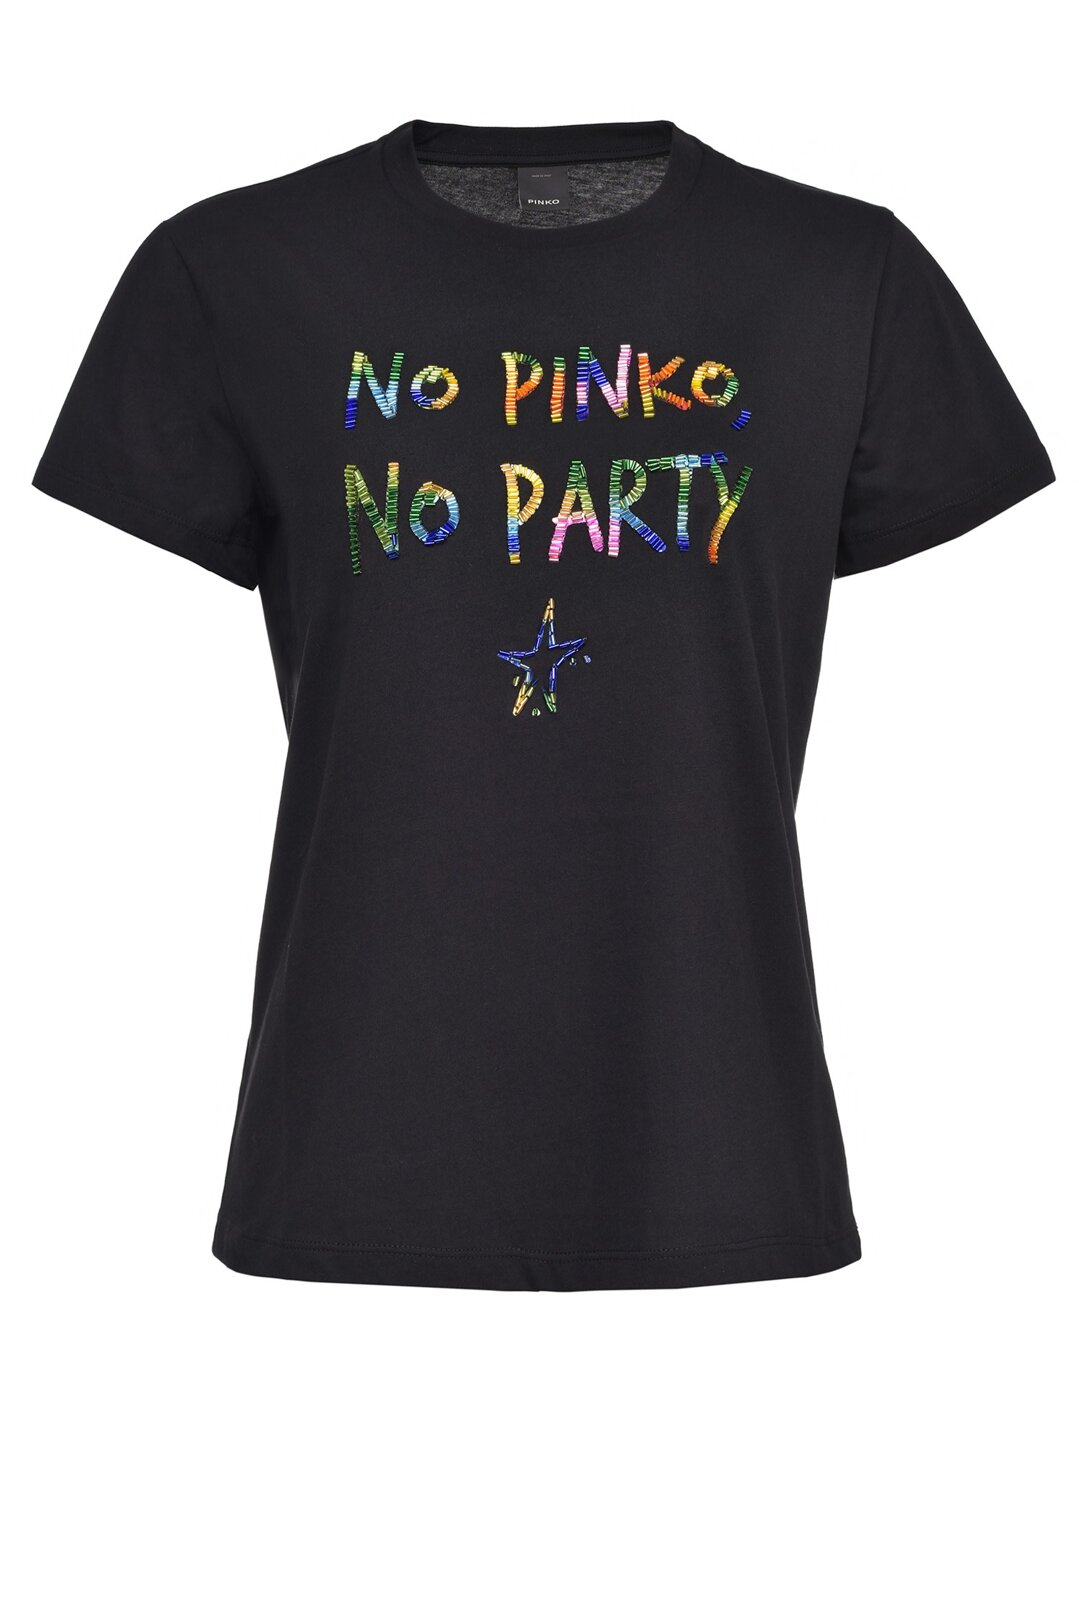 No Pinko No Party Multicolor T-Shirt - Pinko